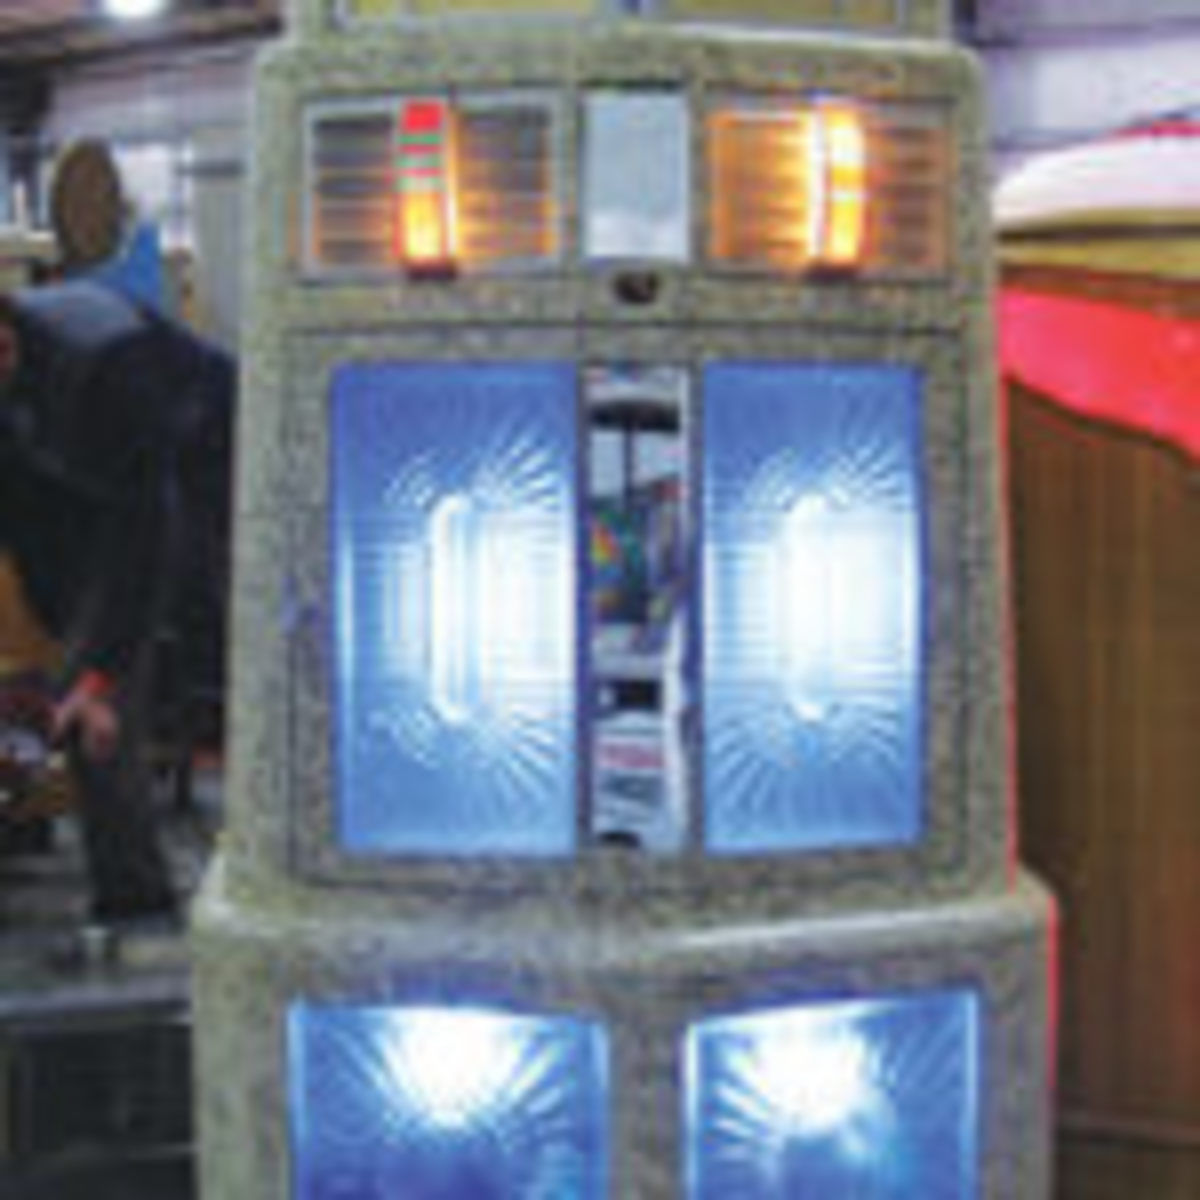 At 71 inches tall, the 1939 AMI Singing Tower jukebox may have earned the title of the tallest jukebox at the show. Steve Carlton of Salt Lake City priced the music maker at $9,500.